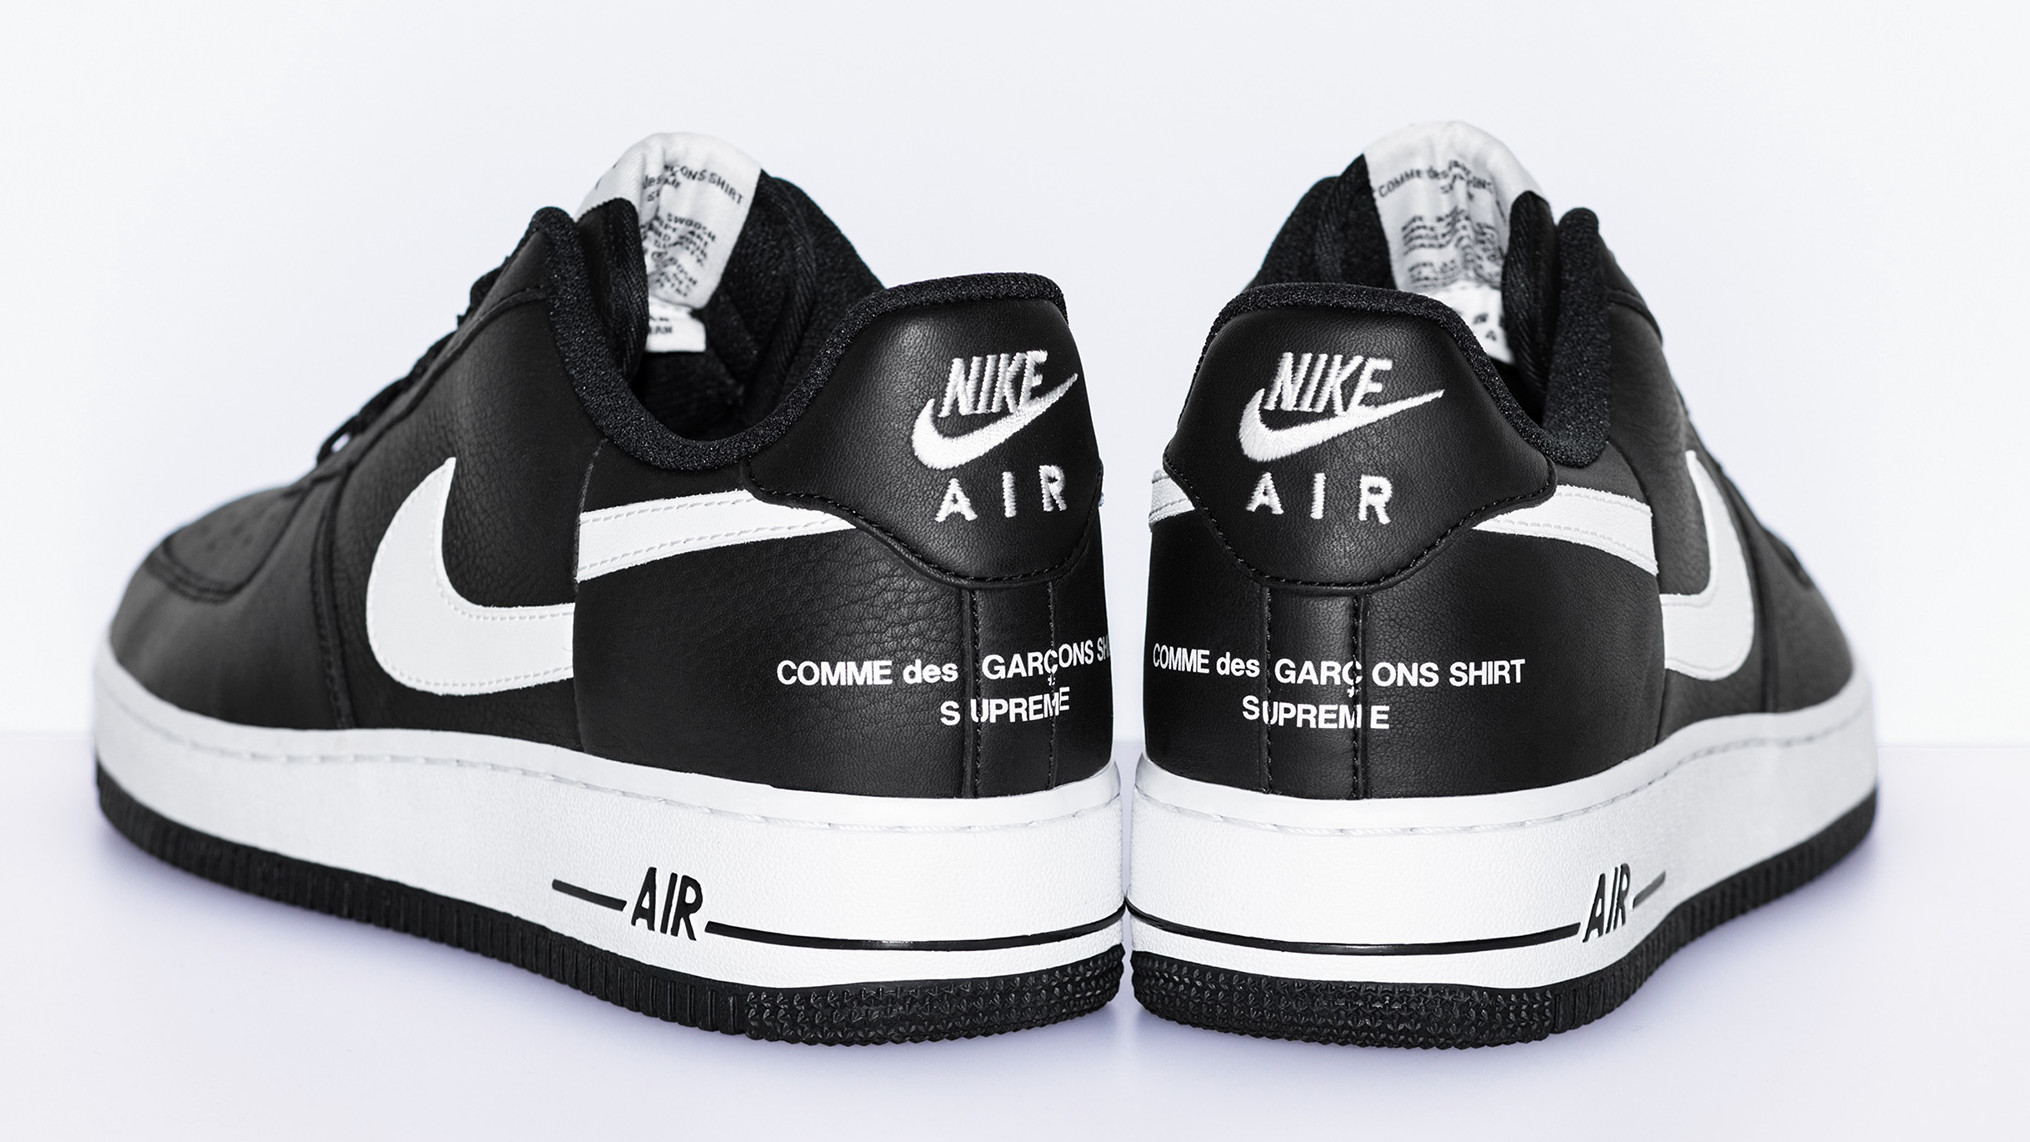 Supreme x Comme Des Garcons x Nike Air Force 1 Fall Winter 2018 ... f4e485ace